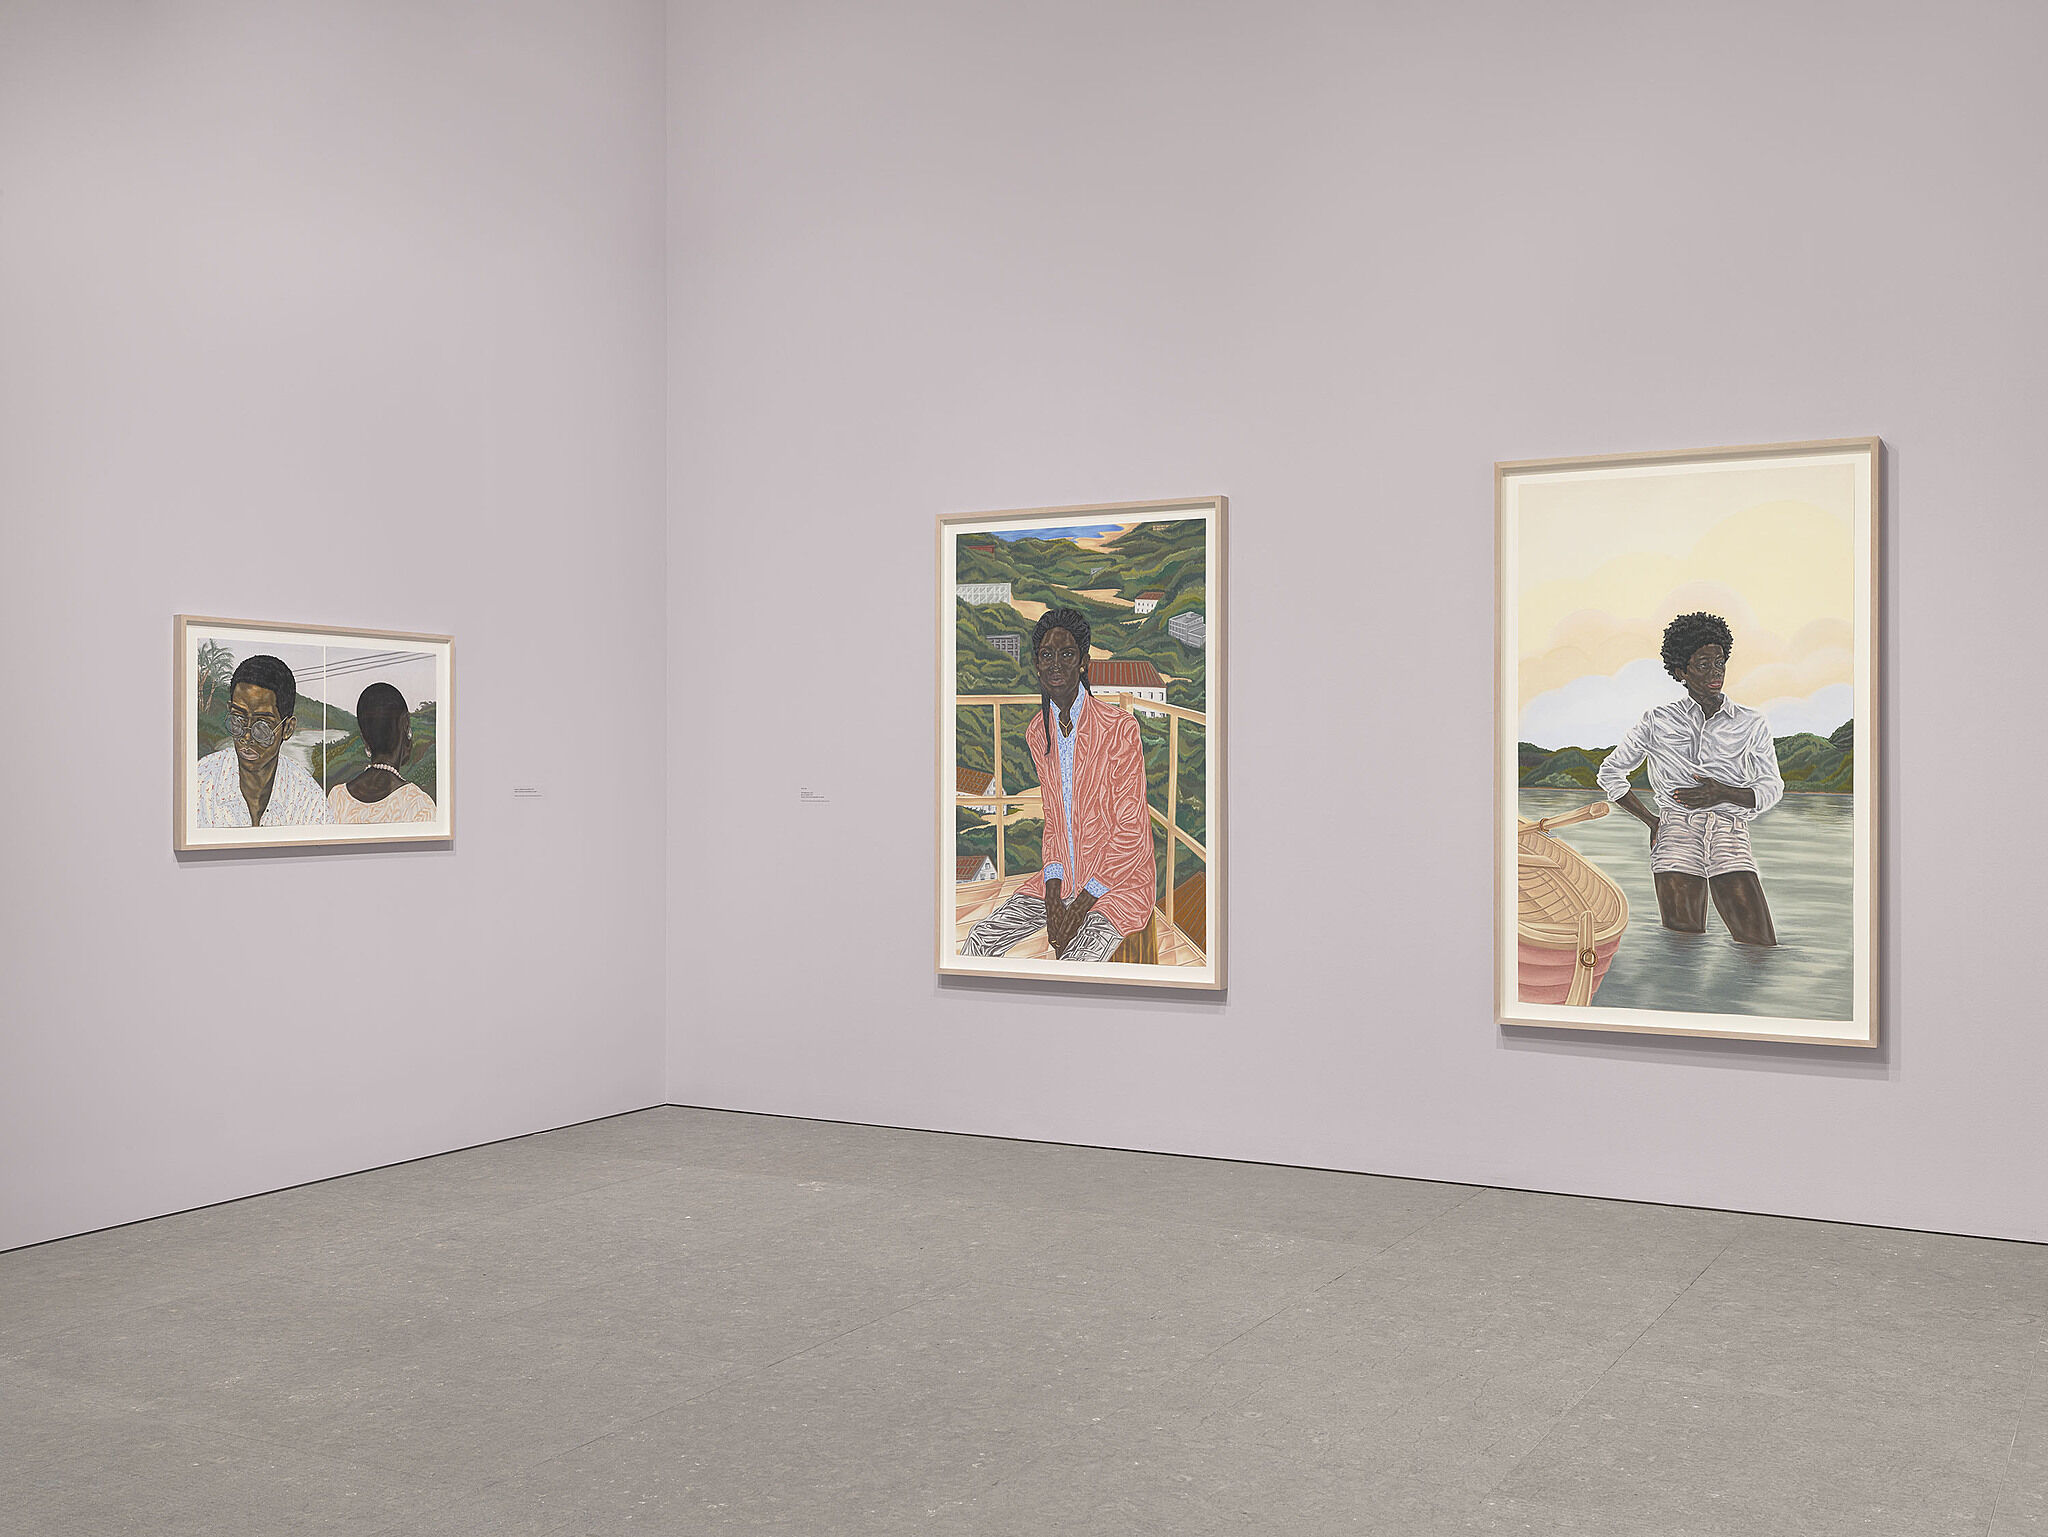 Installation view of Toyin Ojih Odutola: To Wander Determined